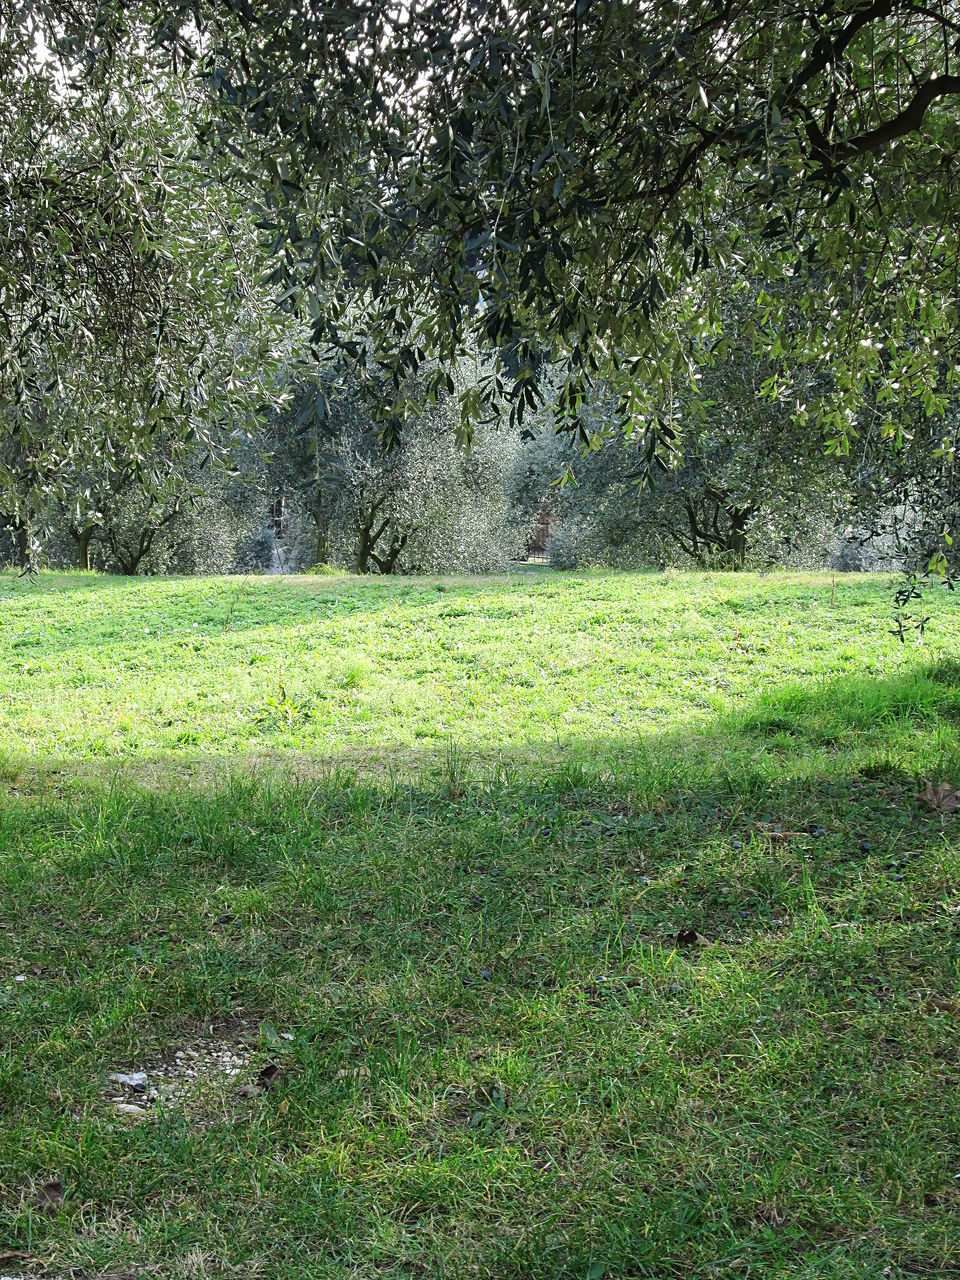 grass, green color, growth, tree, nature, field, no people, day, outdoors, plant, tranquility, beauty in nature, landscape, freshness